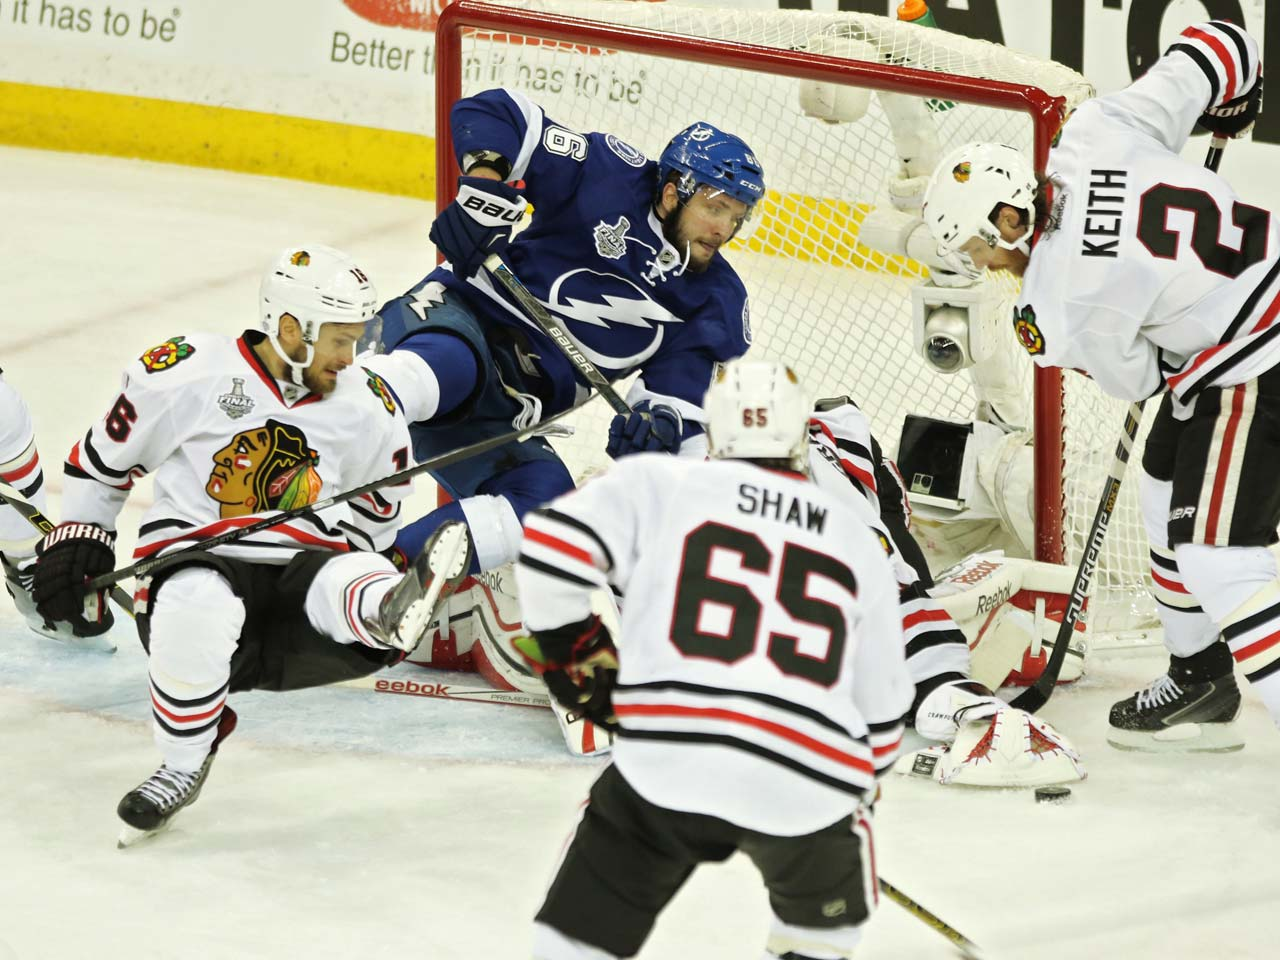 Corey Crawford (50) of the Blackhawks reaches to cover the puck as Duncan Keith (2) attempts to aid him in defending the Blackhawks net.